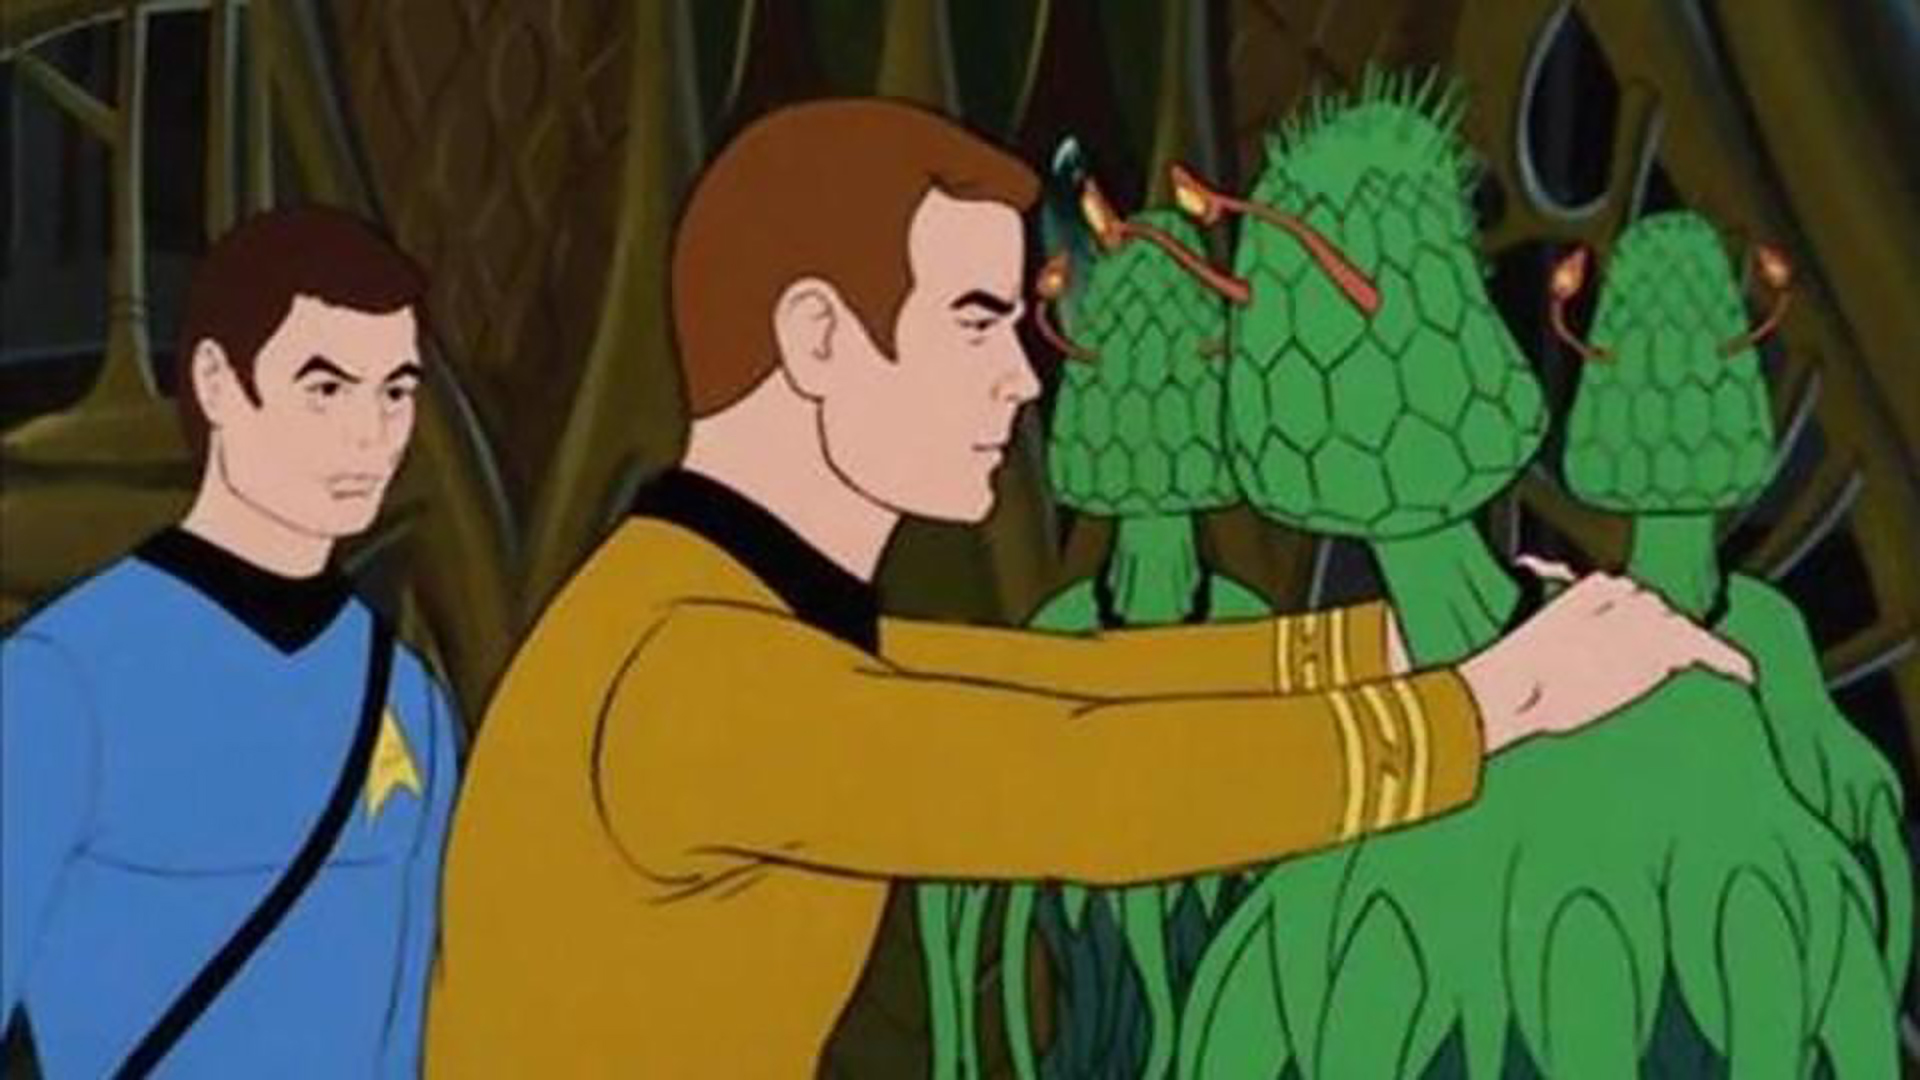 Watch Star Trek: The Animated Series Season 1 Episode 7: The Infinite  Vulcan - Full show on CBS All Access